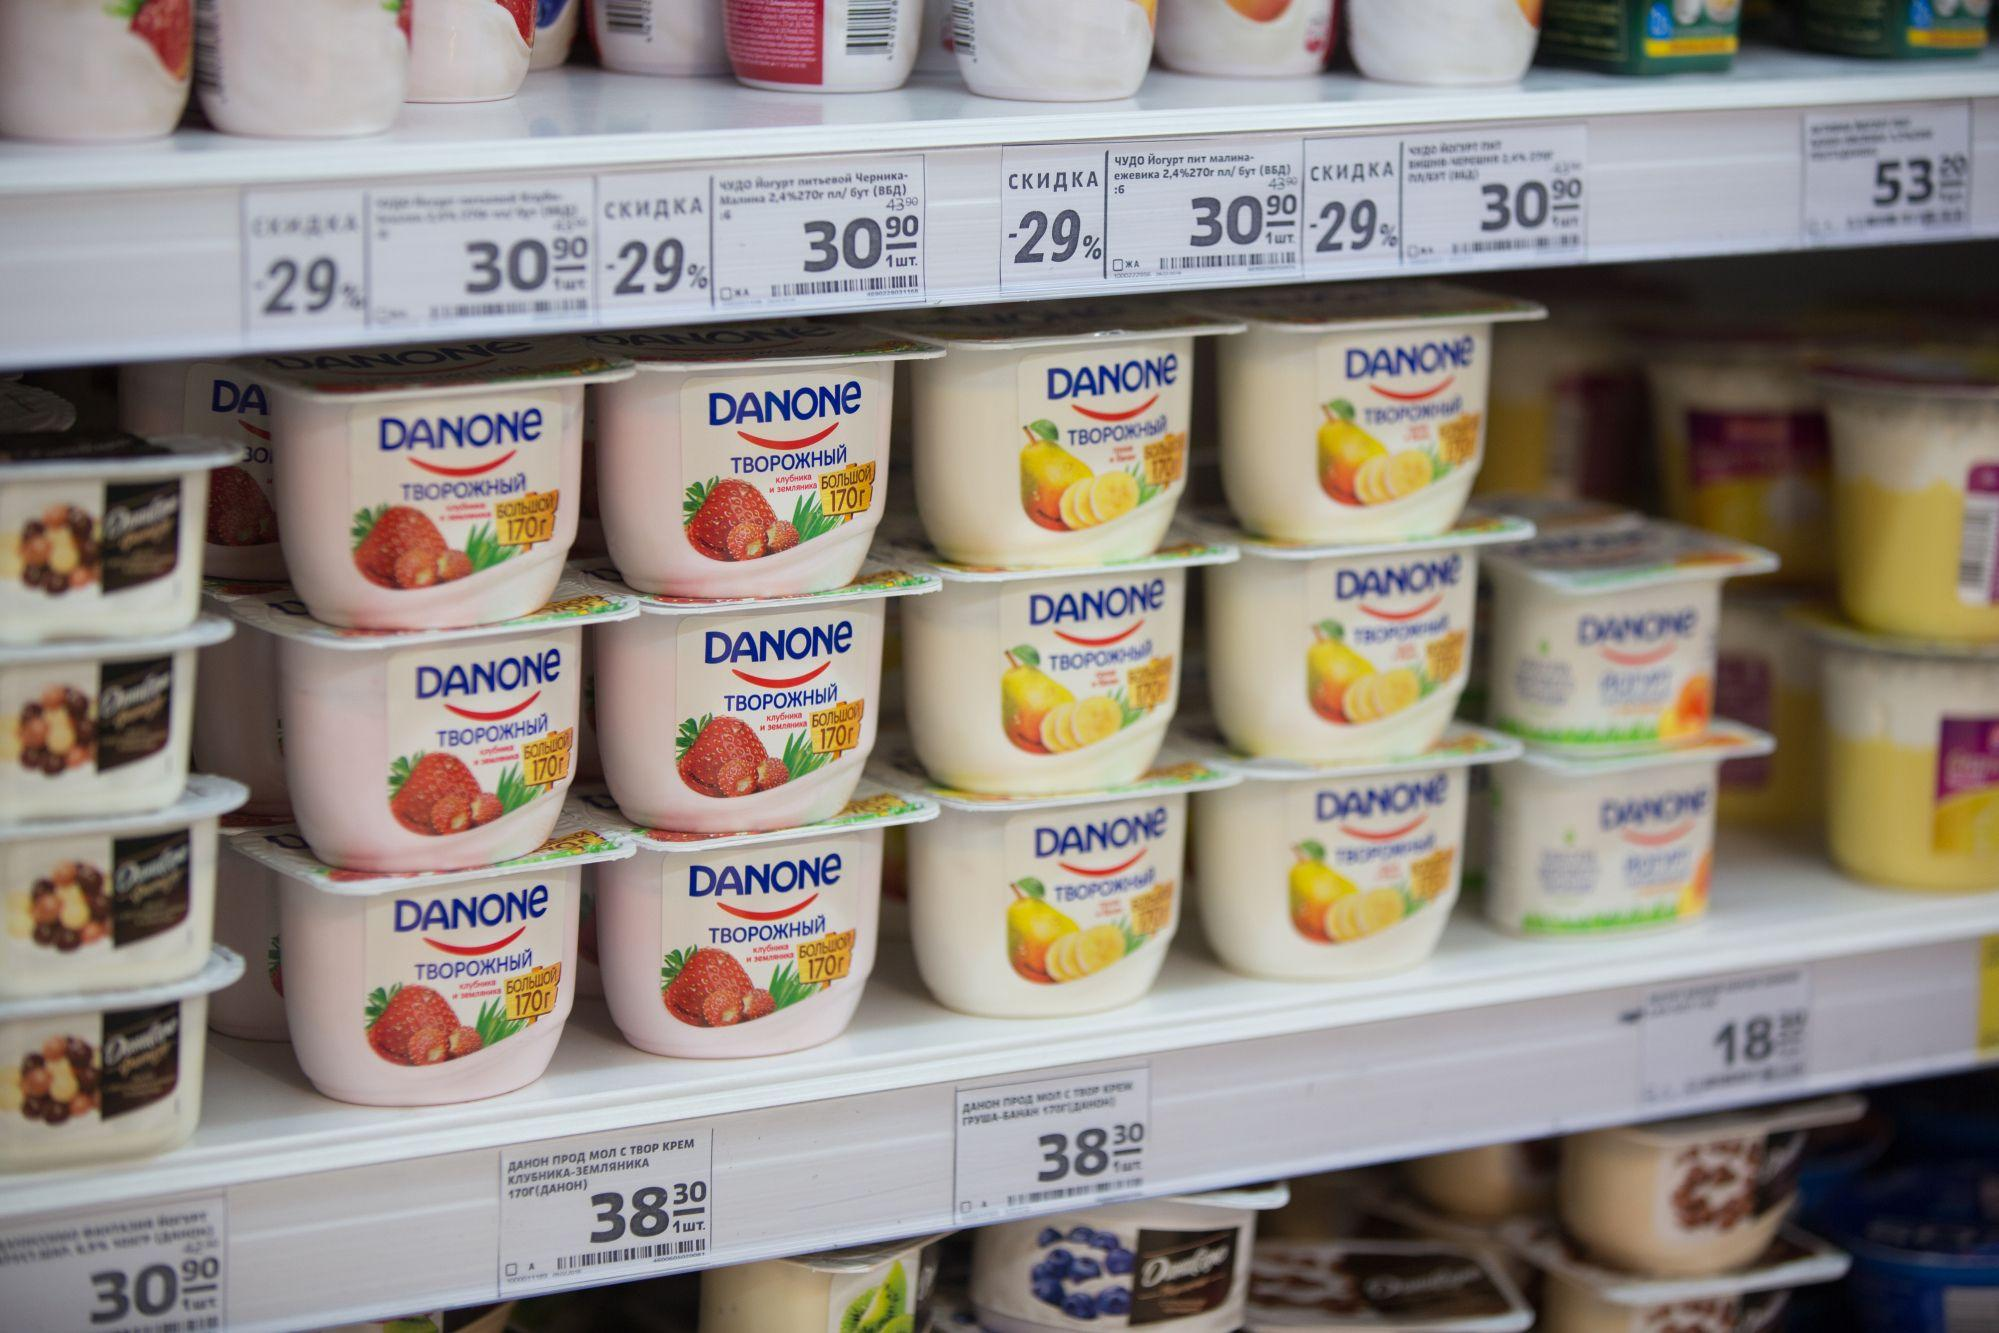 Danone is preparing to sell a $ 1 billion stake in Mengniu, China